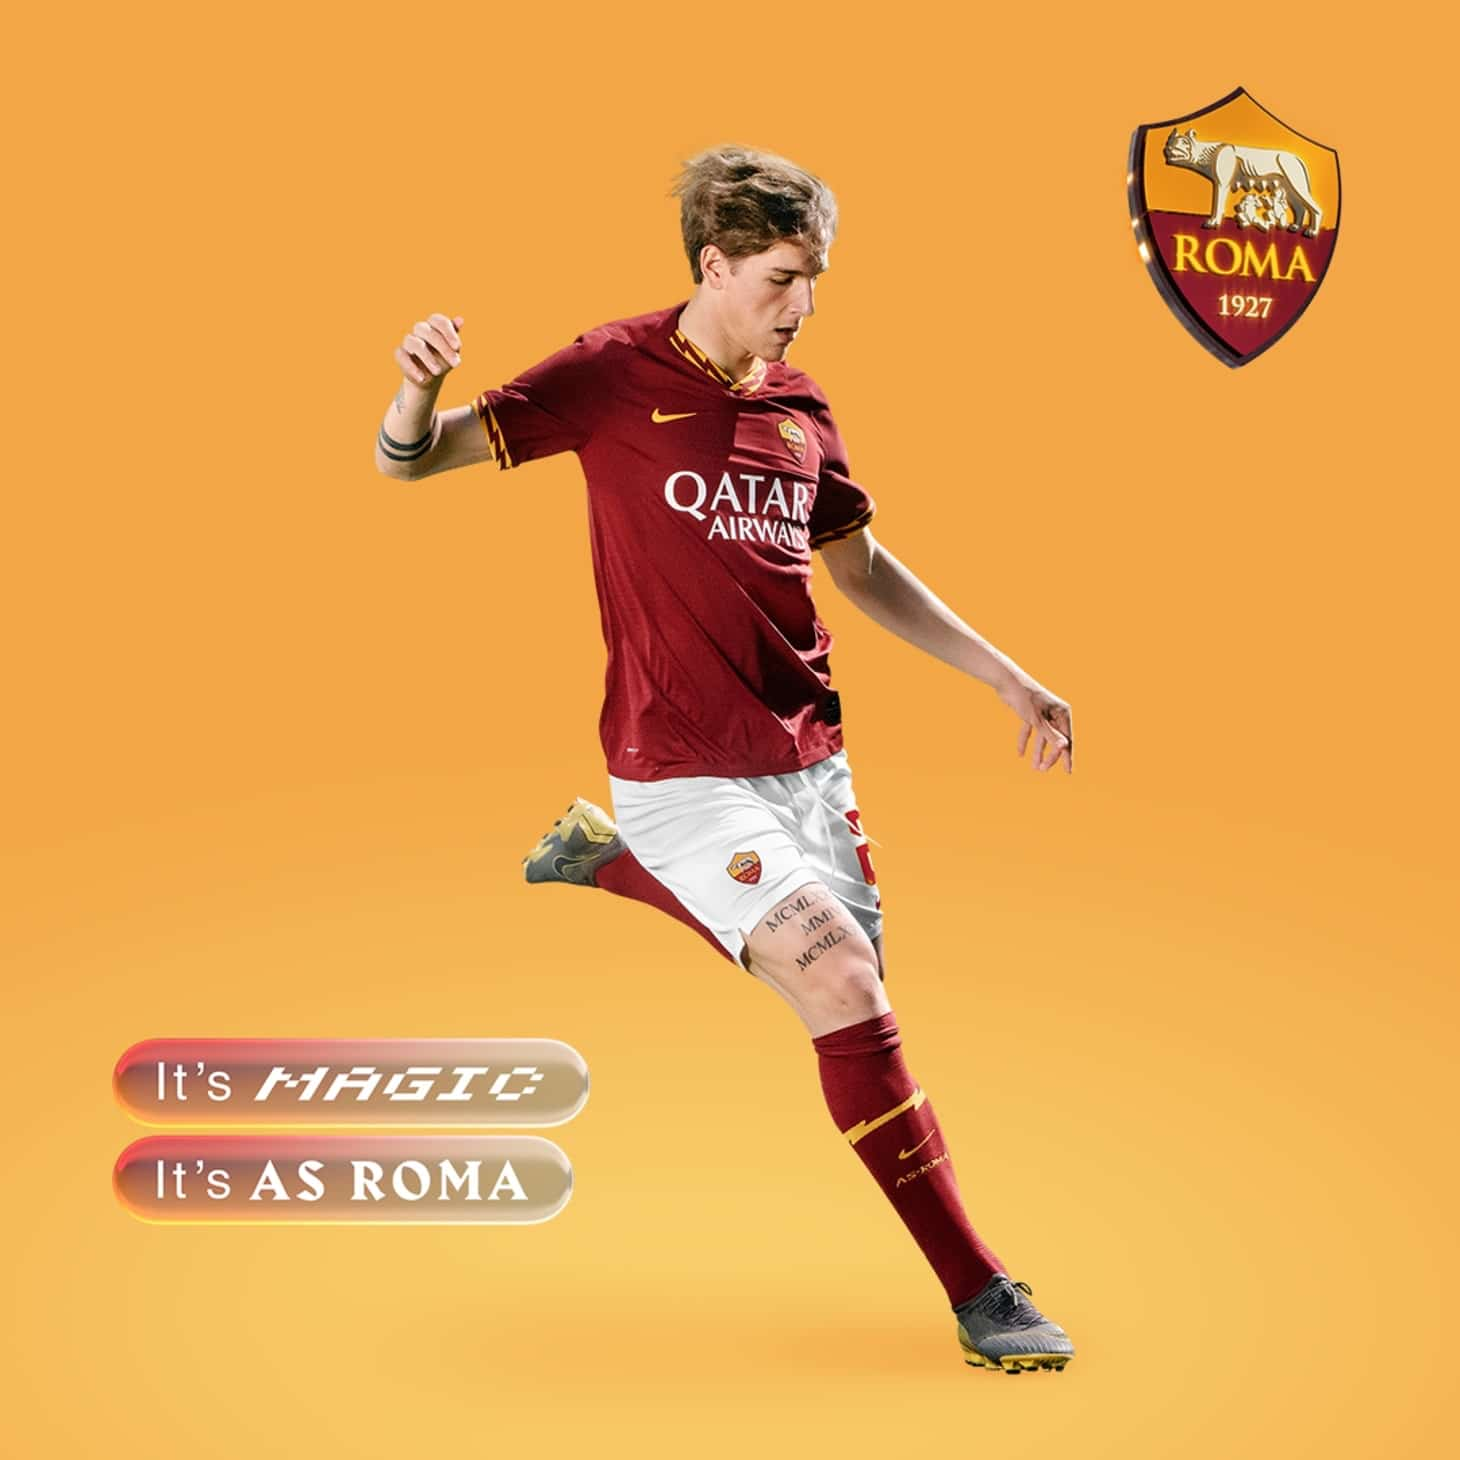 Nike 2019-20 AS Roma Home Kit 2019-20